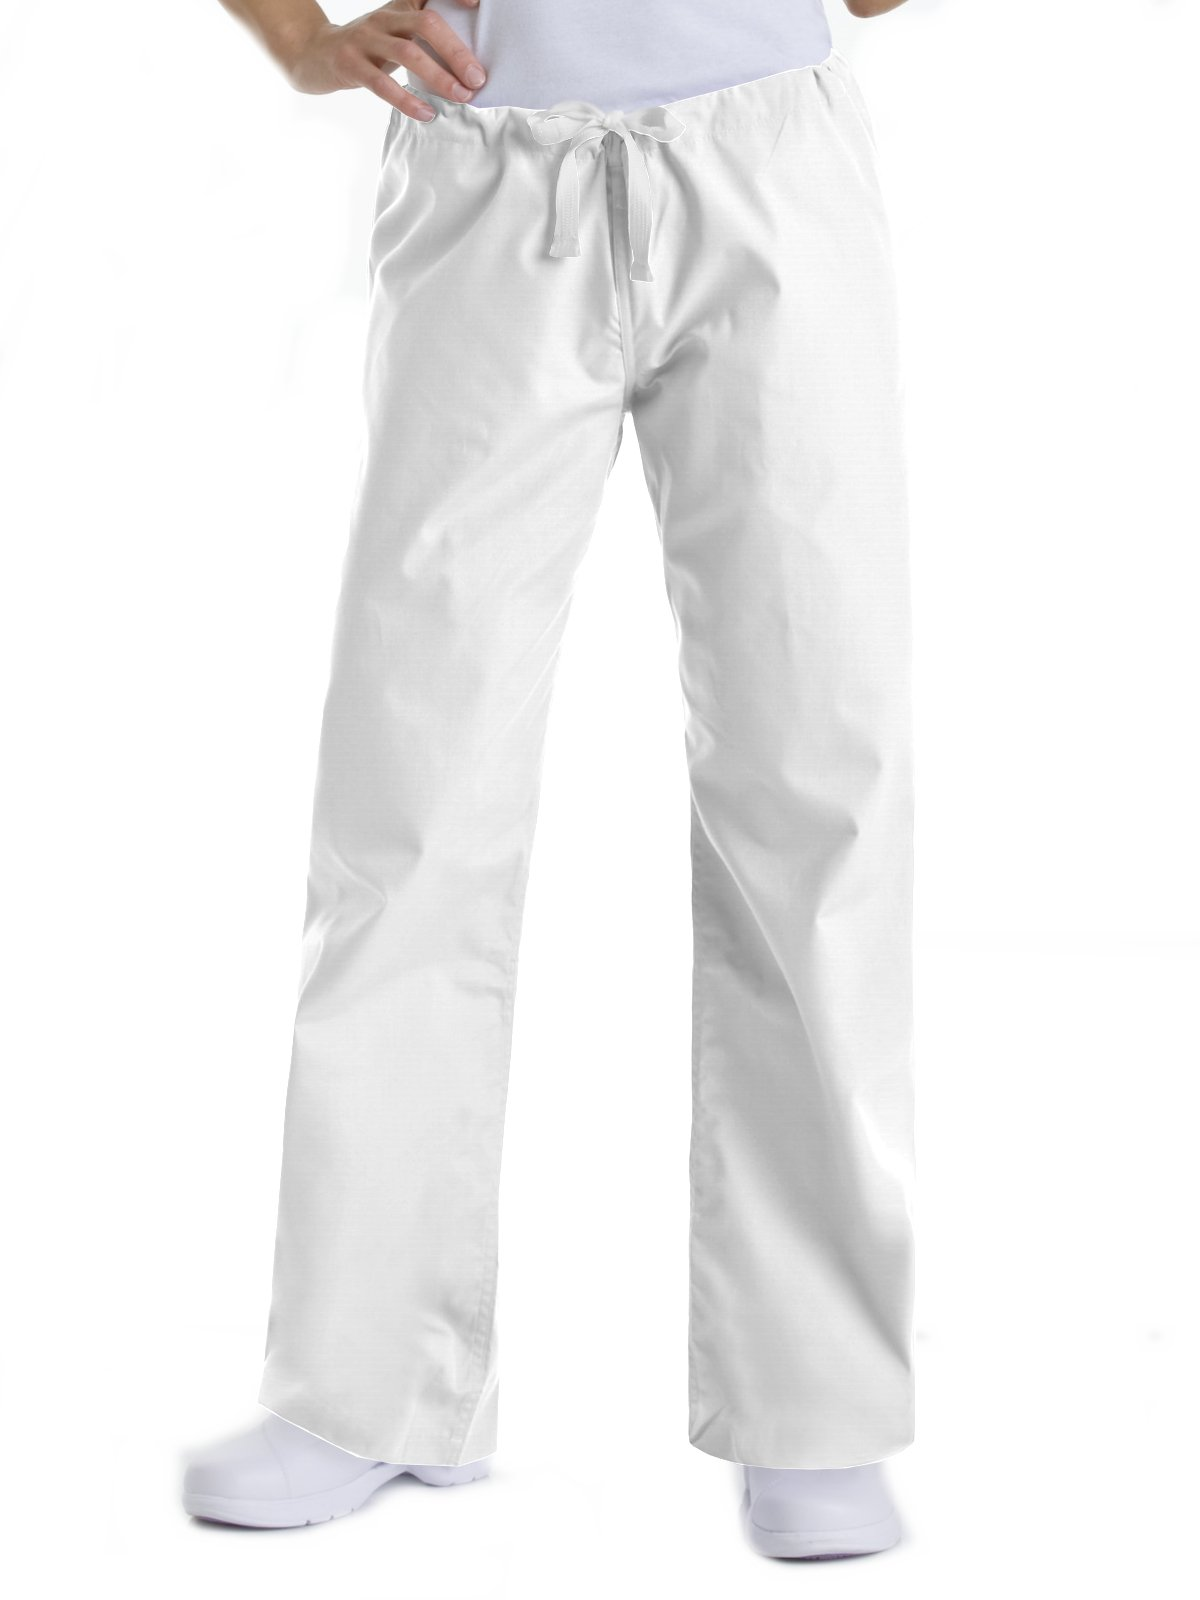 Urbane Essentials 9502 Relaxed Drawstring Pant White MP